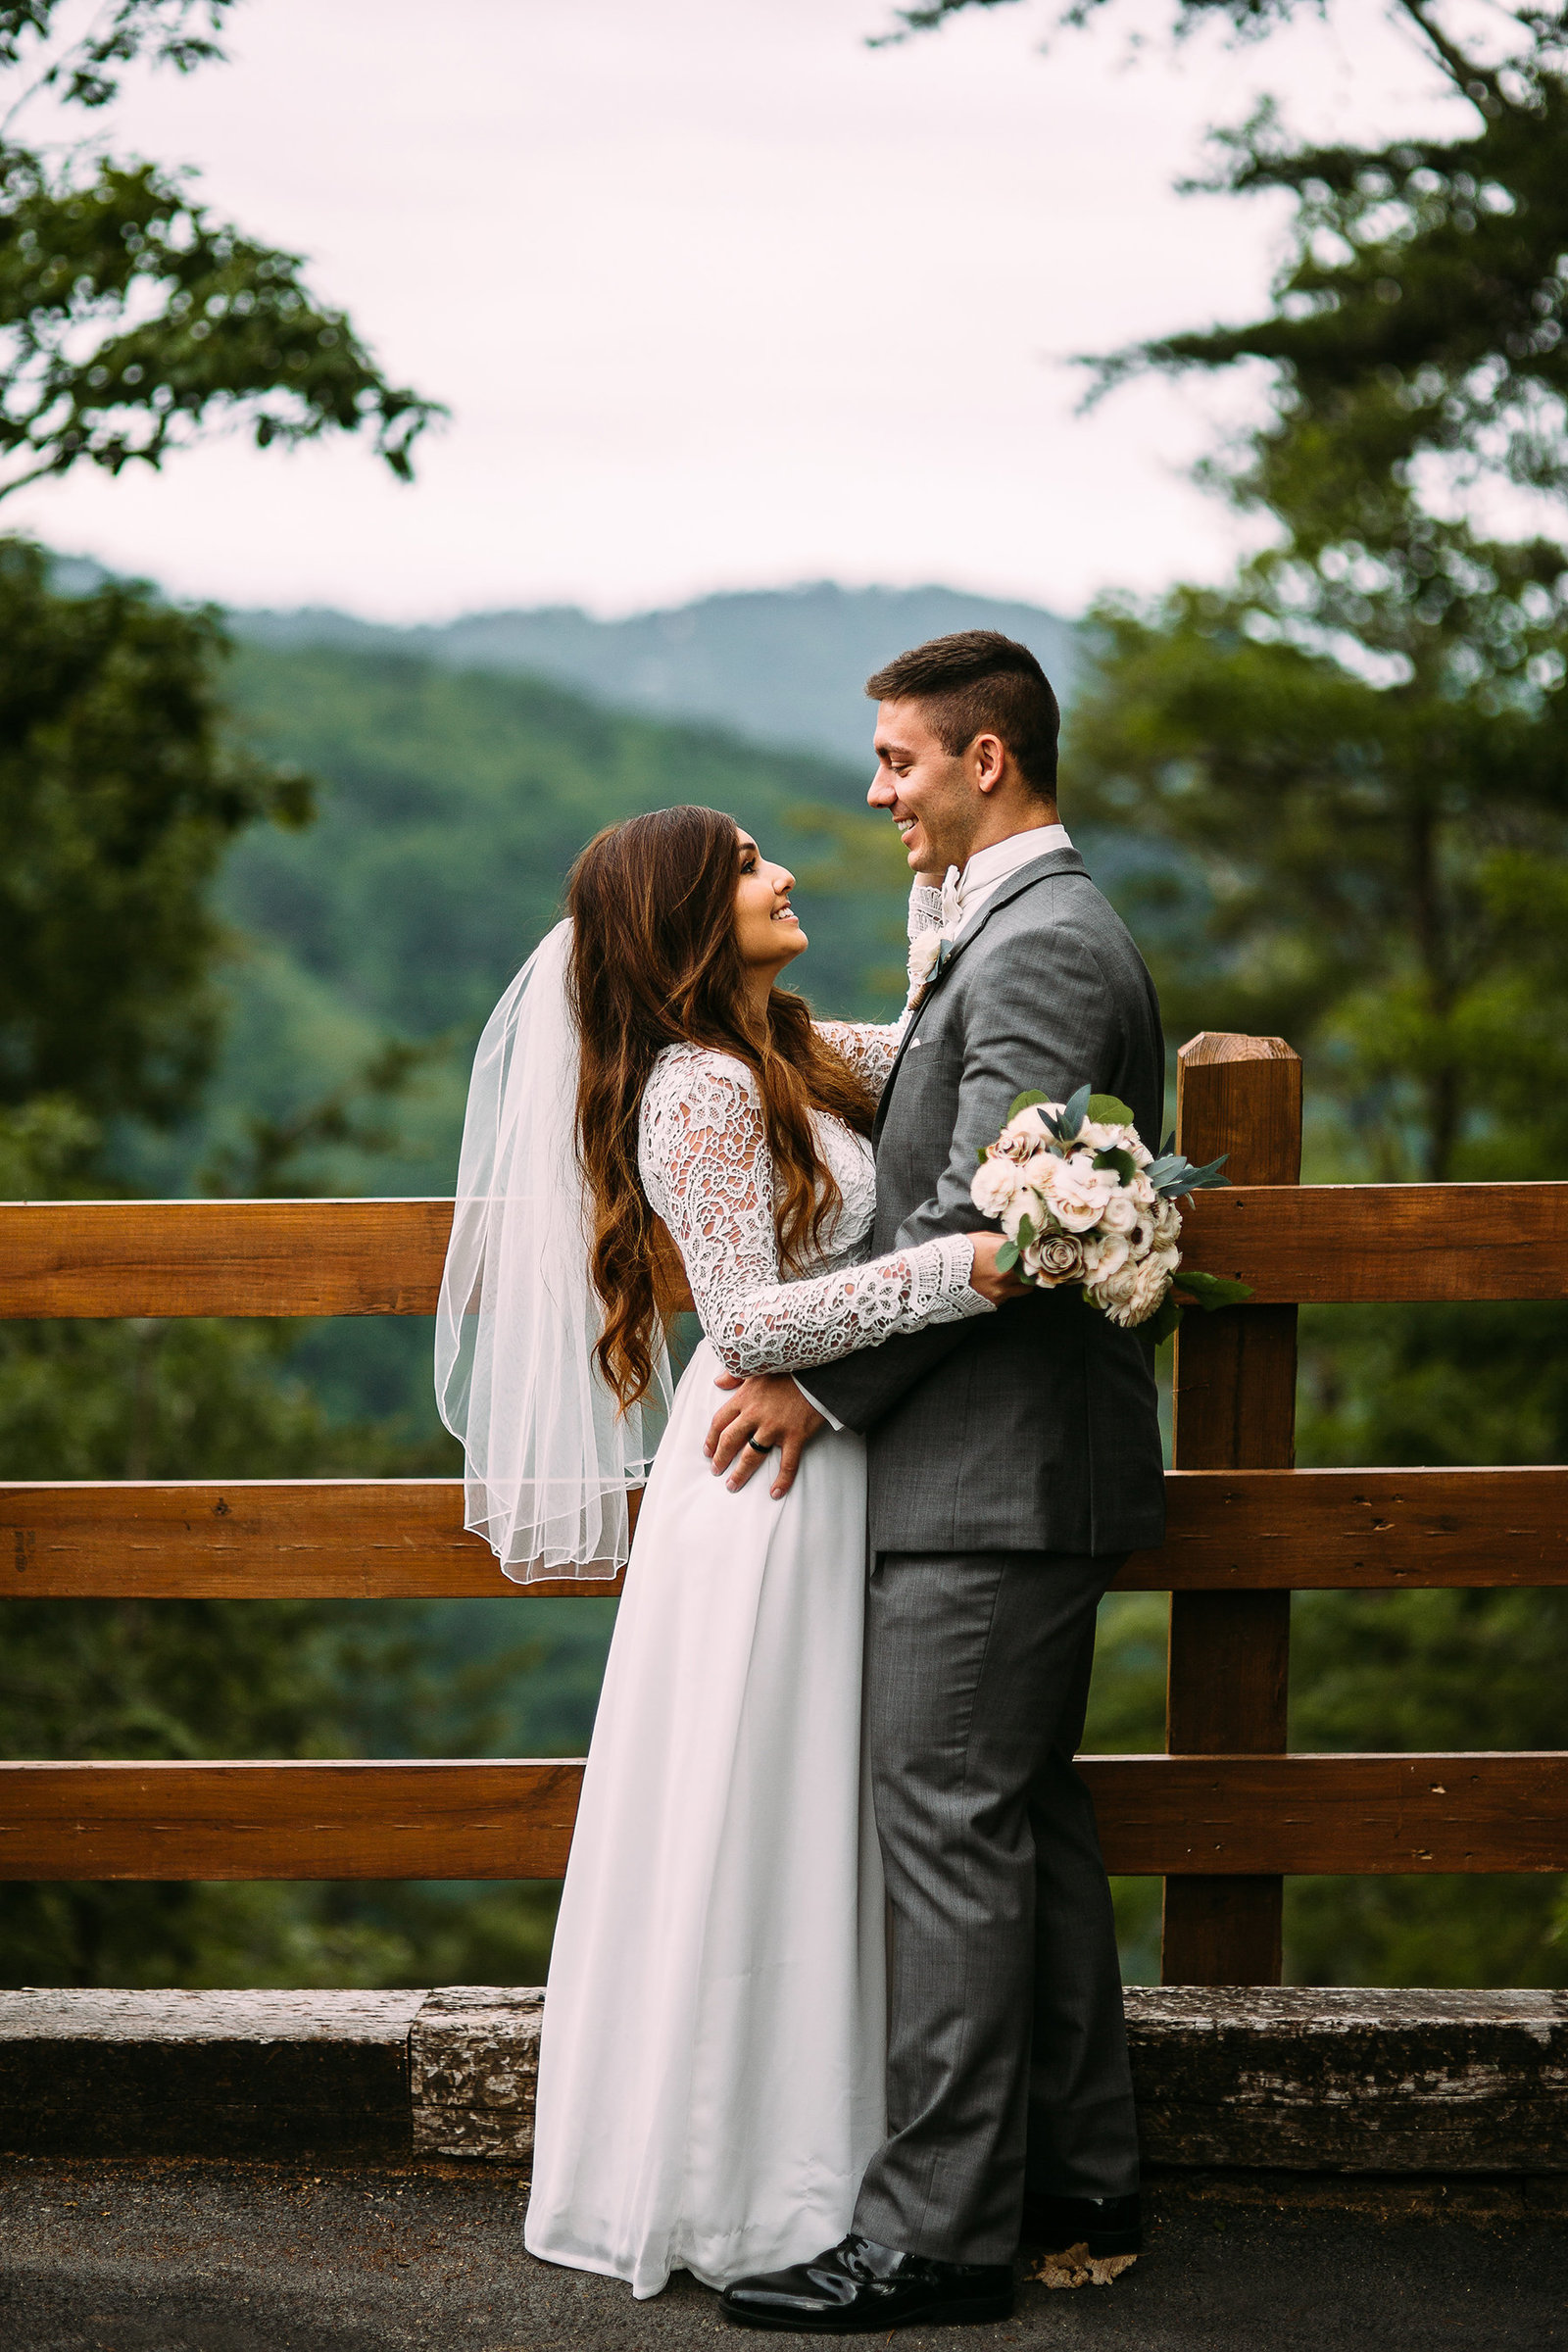 SaraLane-Stevie-Wedding-Elopement-Mountain-Photography-Graciela-Austin-LR-34PS-SMALL